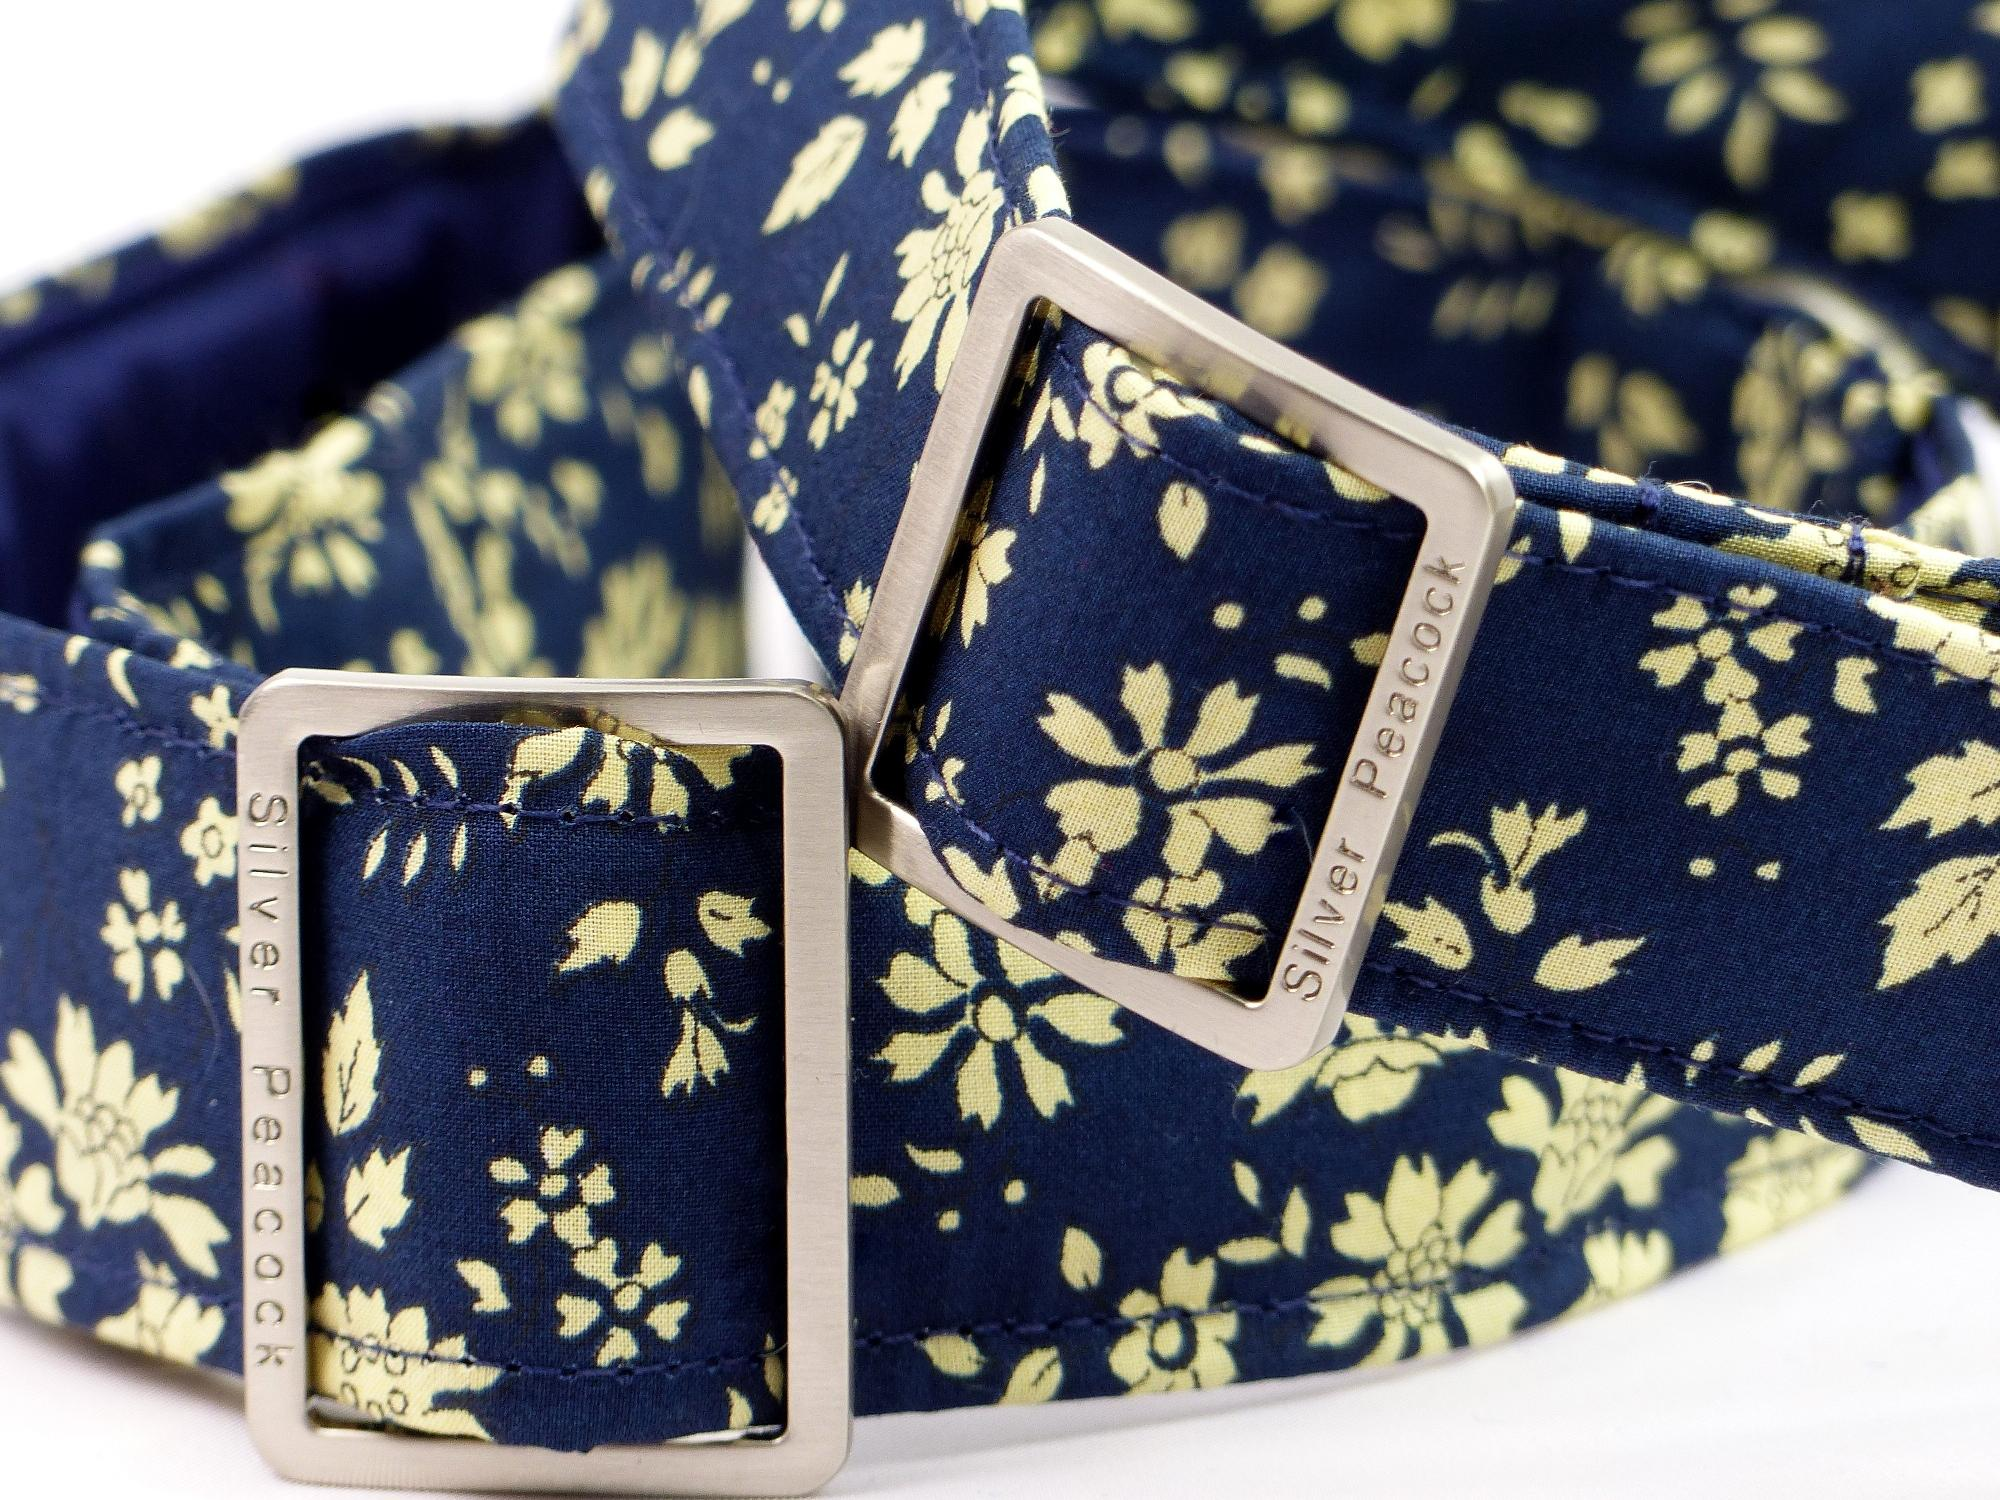 Liberty Print House collars